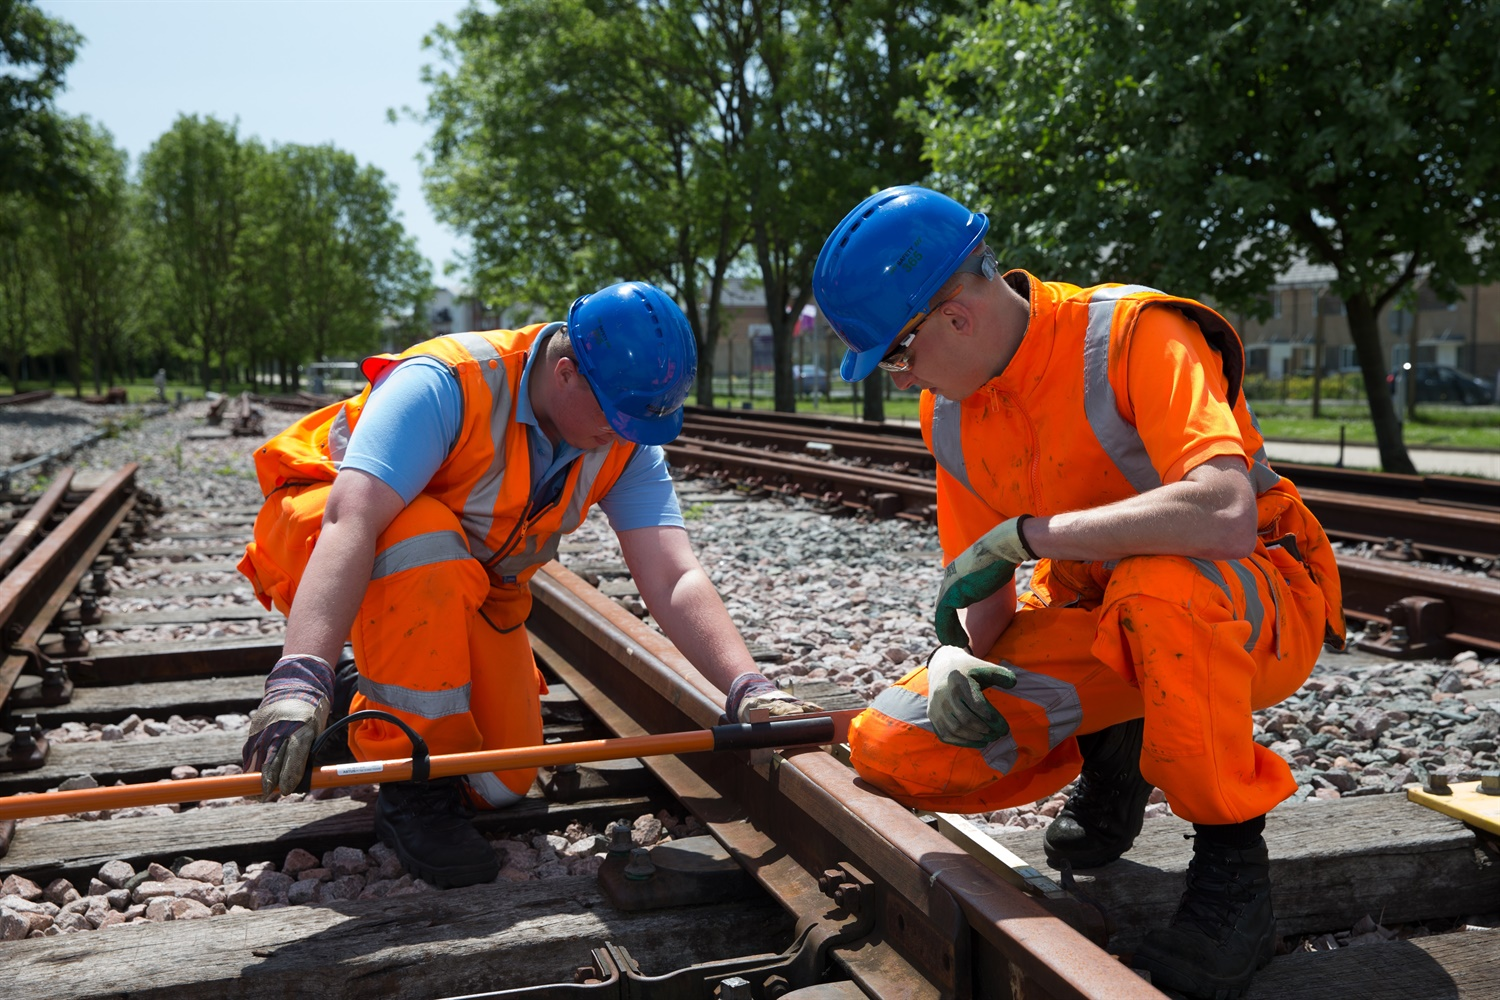 NR to offer new apprenticeships in cyber security and digital railway